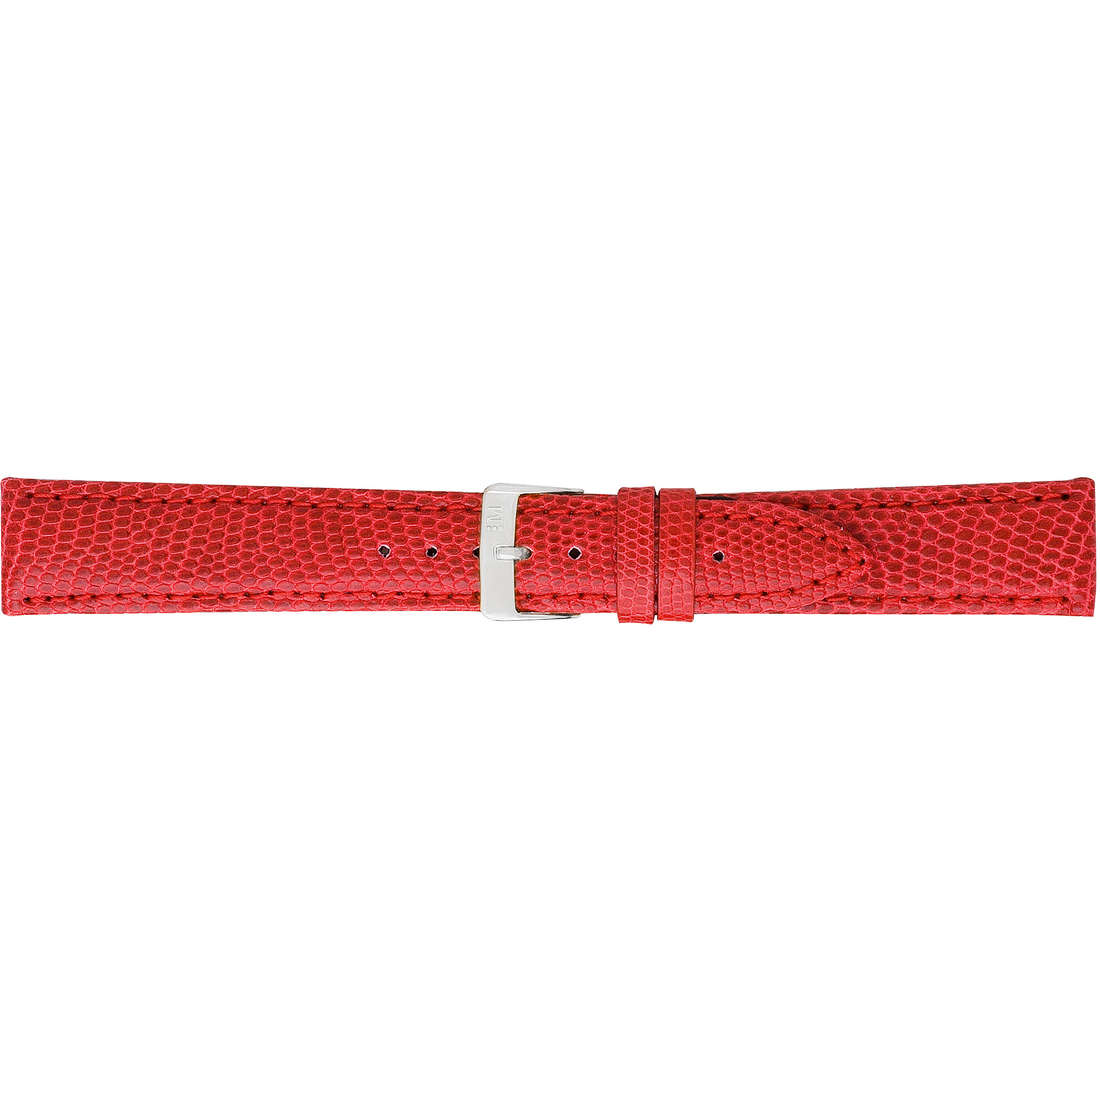 watch watch bands watch straps man Morellato Pelli Preziose A01X2053372083CR18